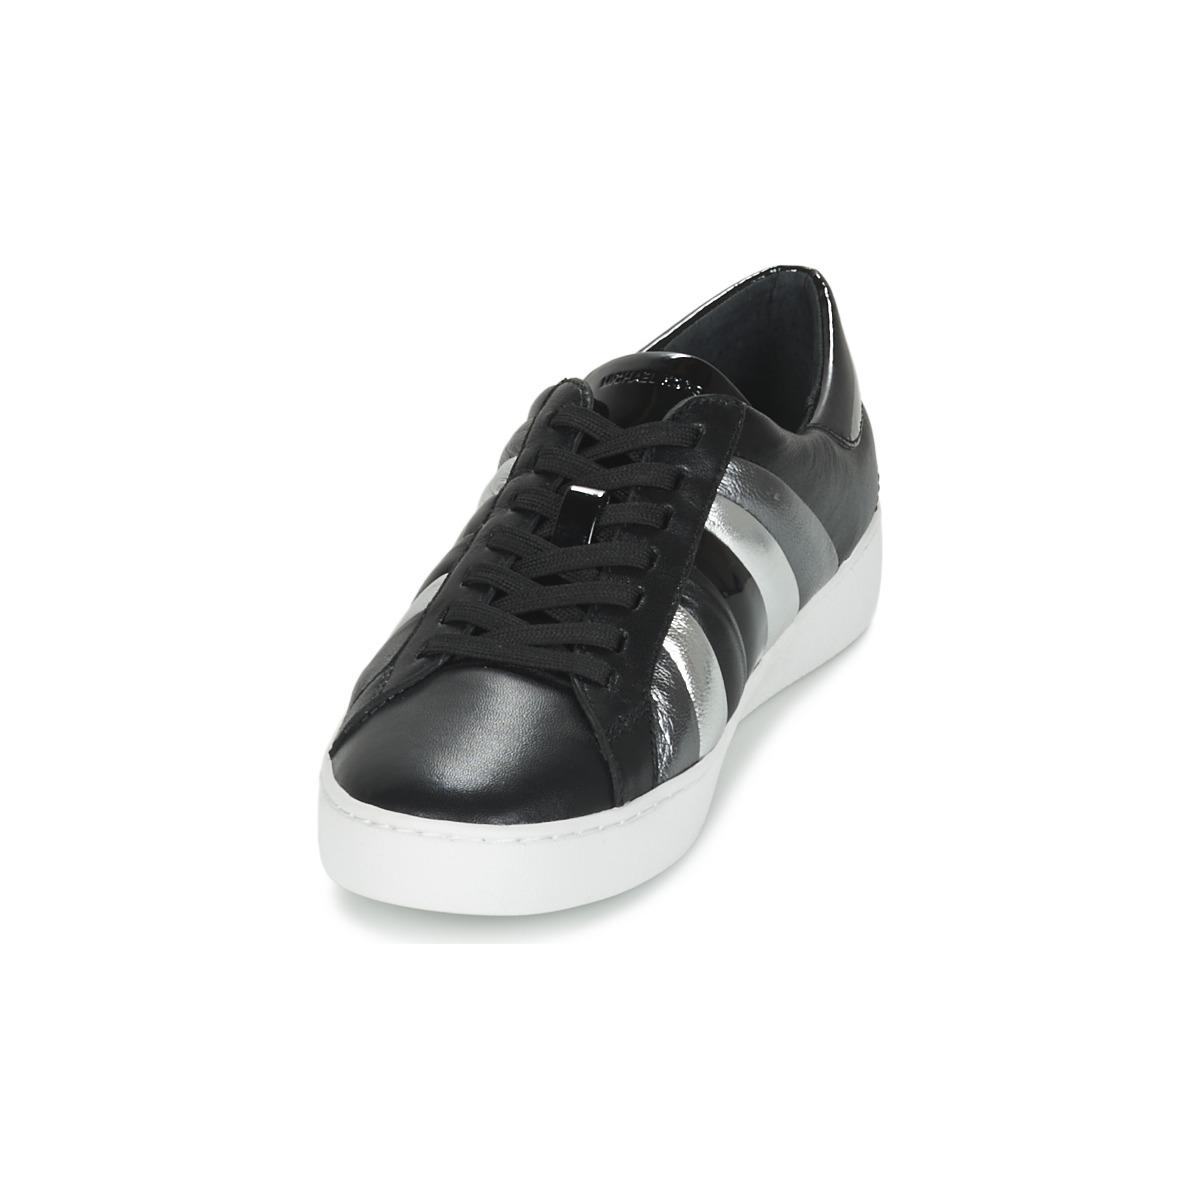 MICHAEL Michael Kors Conrad Sneaker Shoes (trainers) in Black